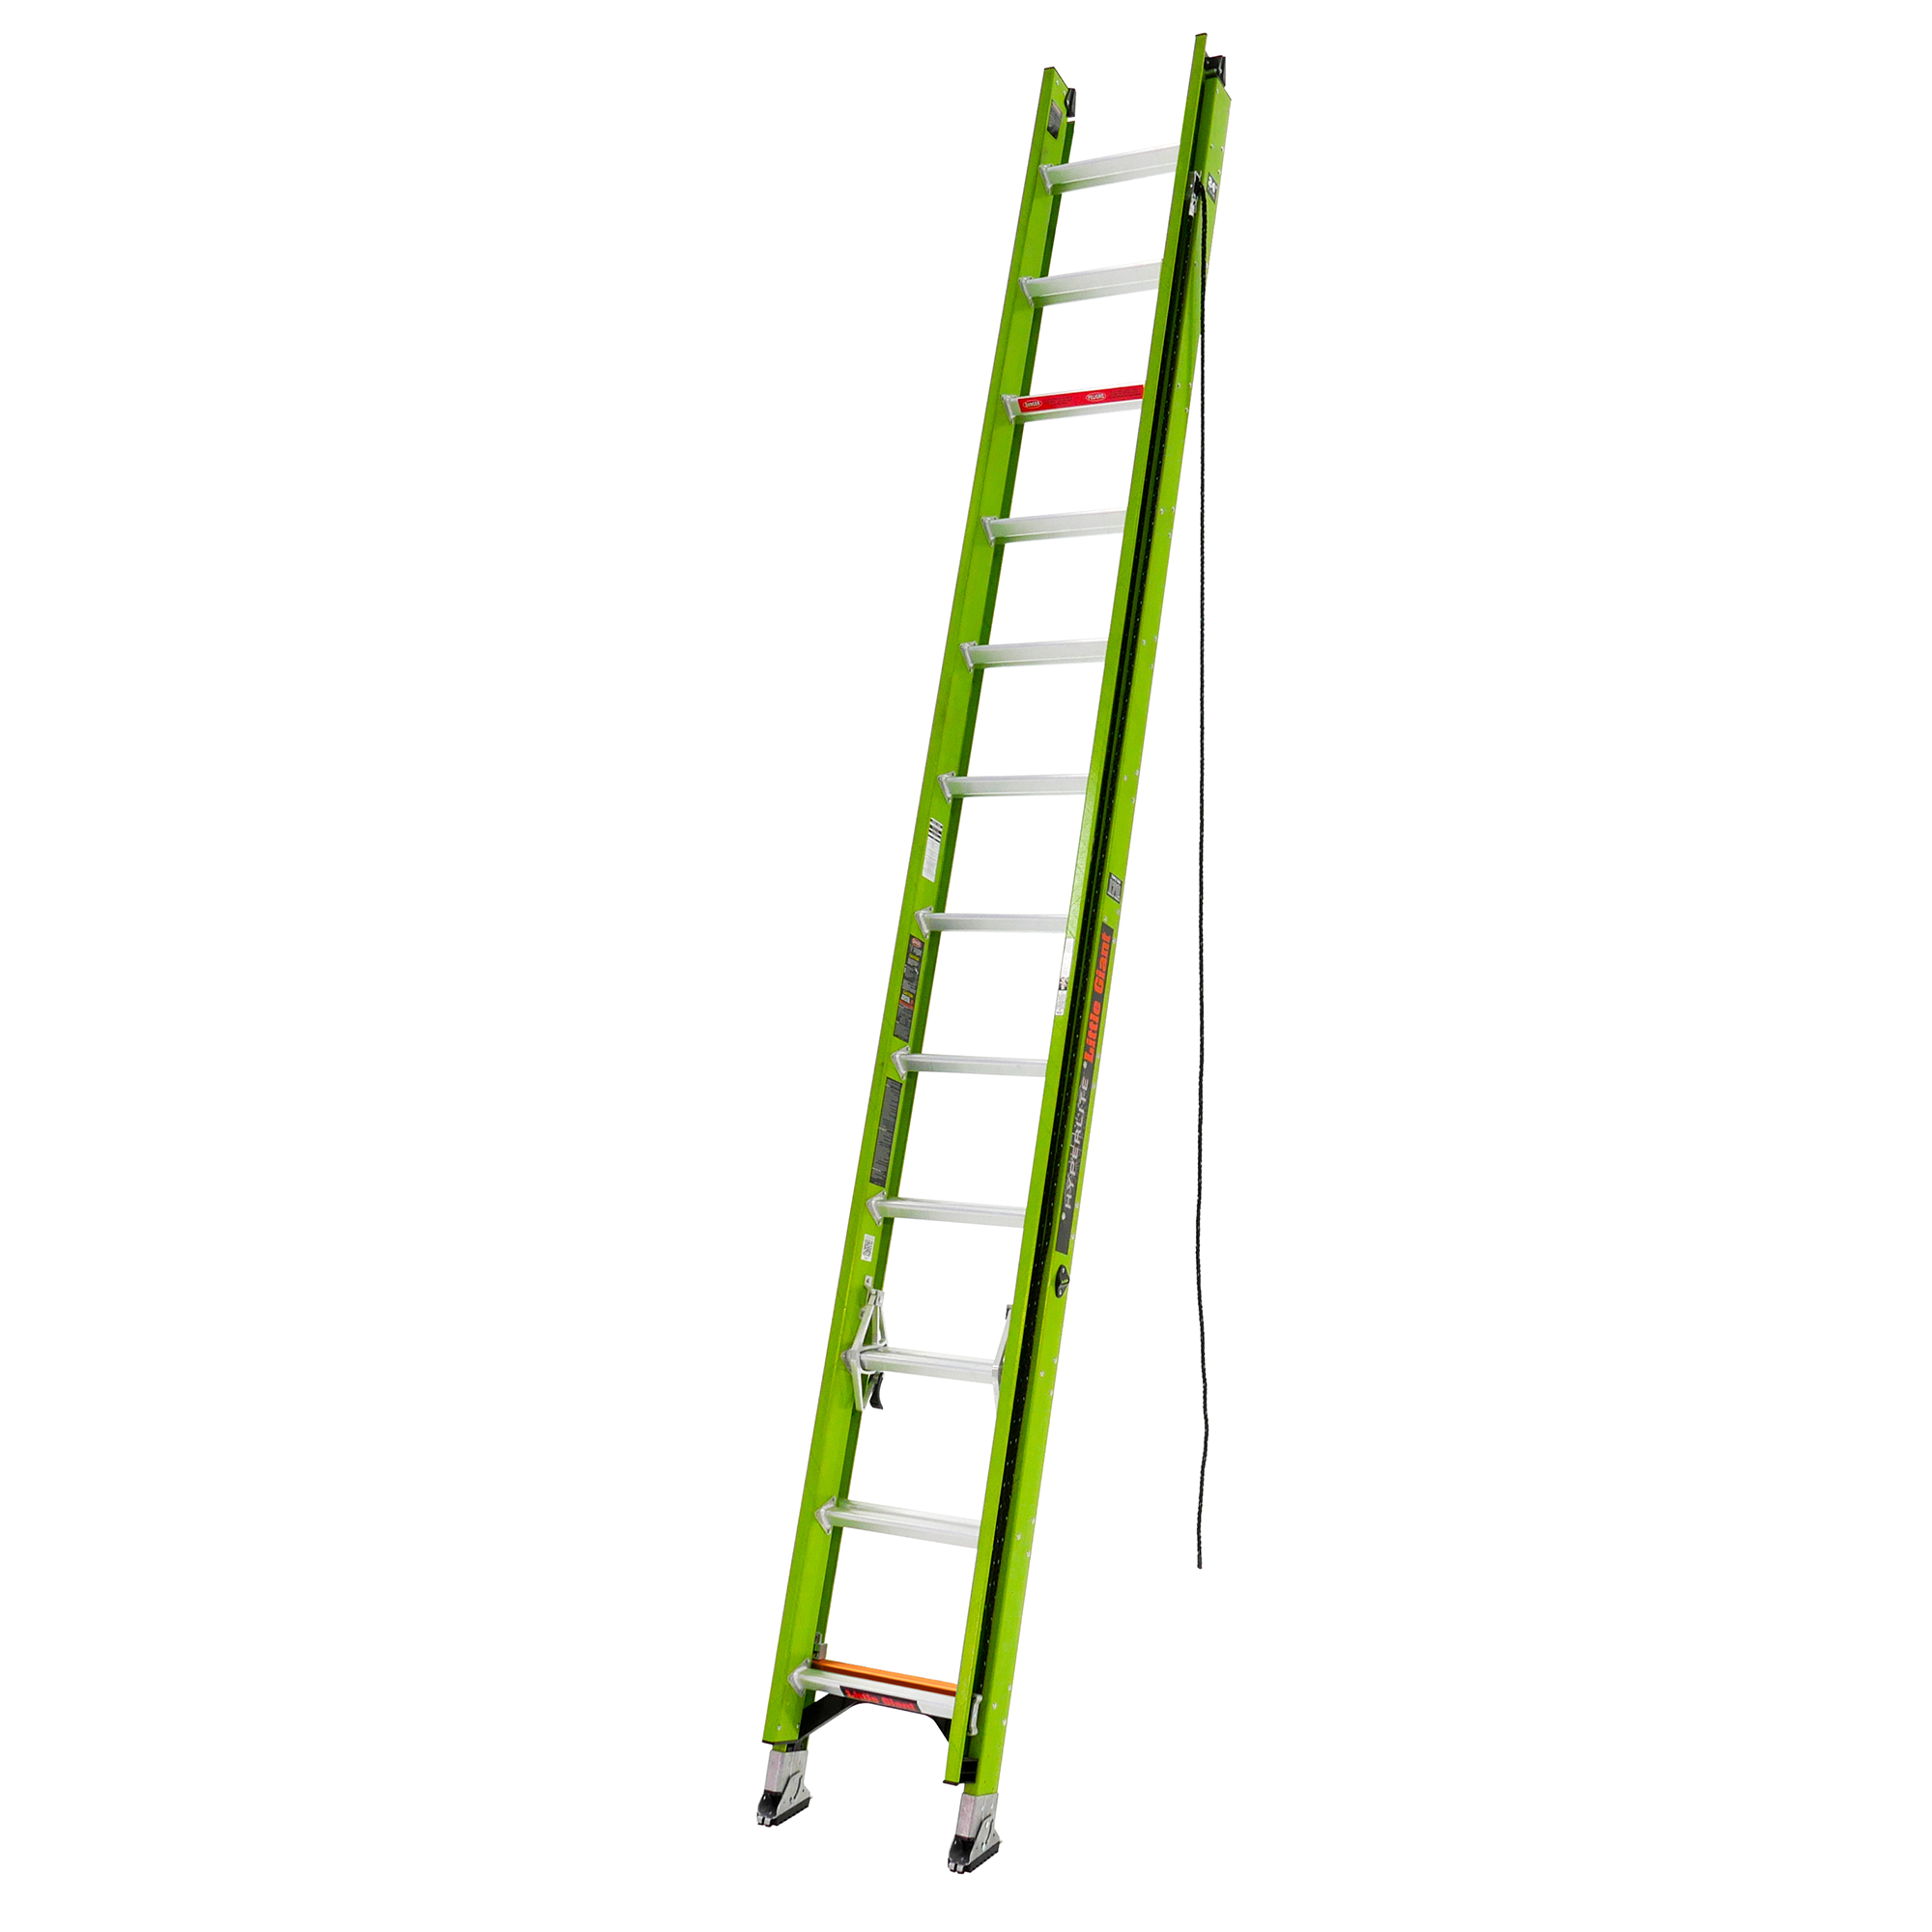 24 Ft. HyperLite Fiberglass Extension Ladder - Type IAA